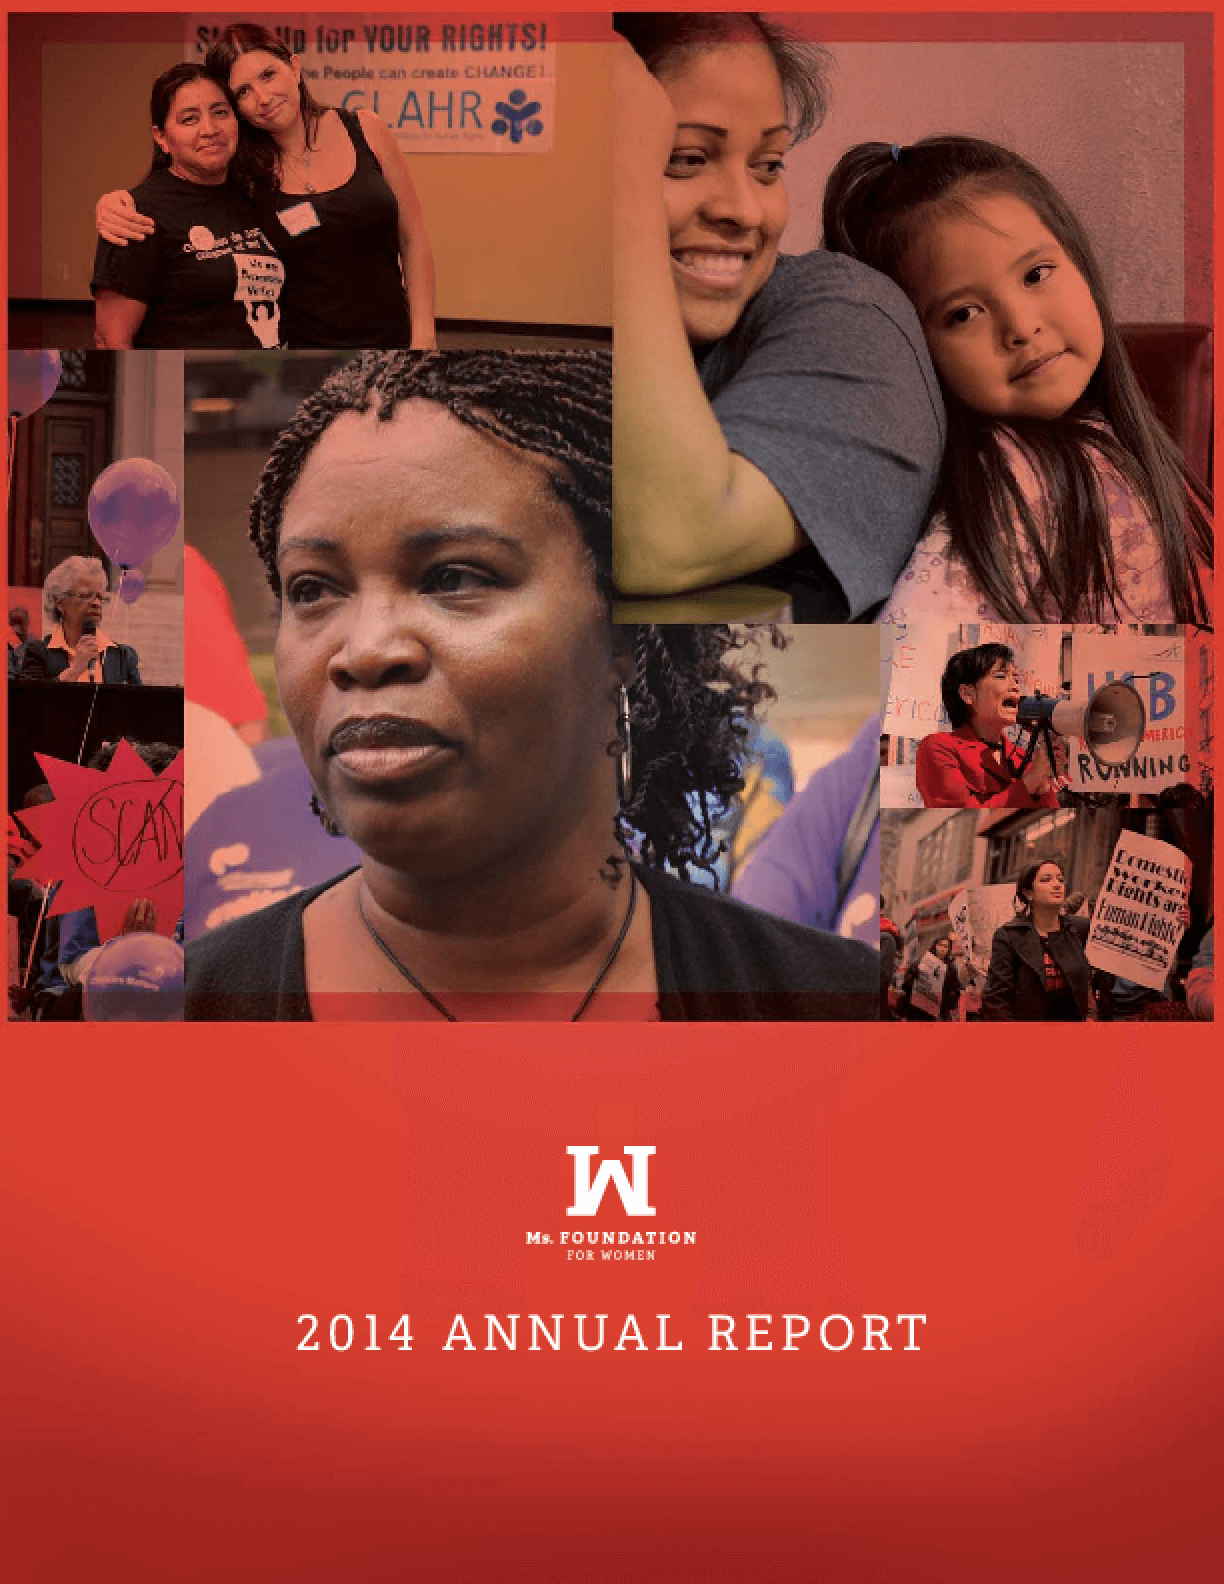 Ms. Foundation for Women, 2014 Annual Report